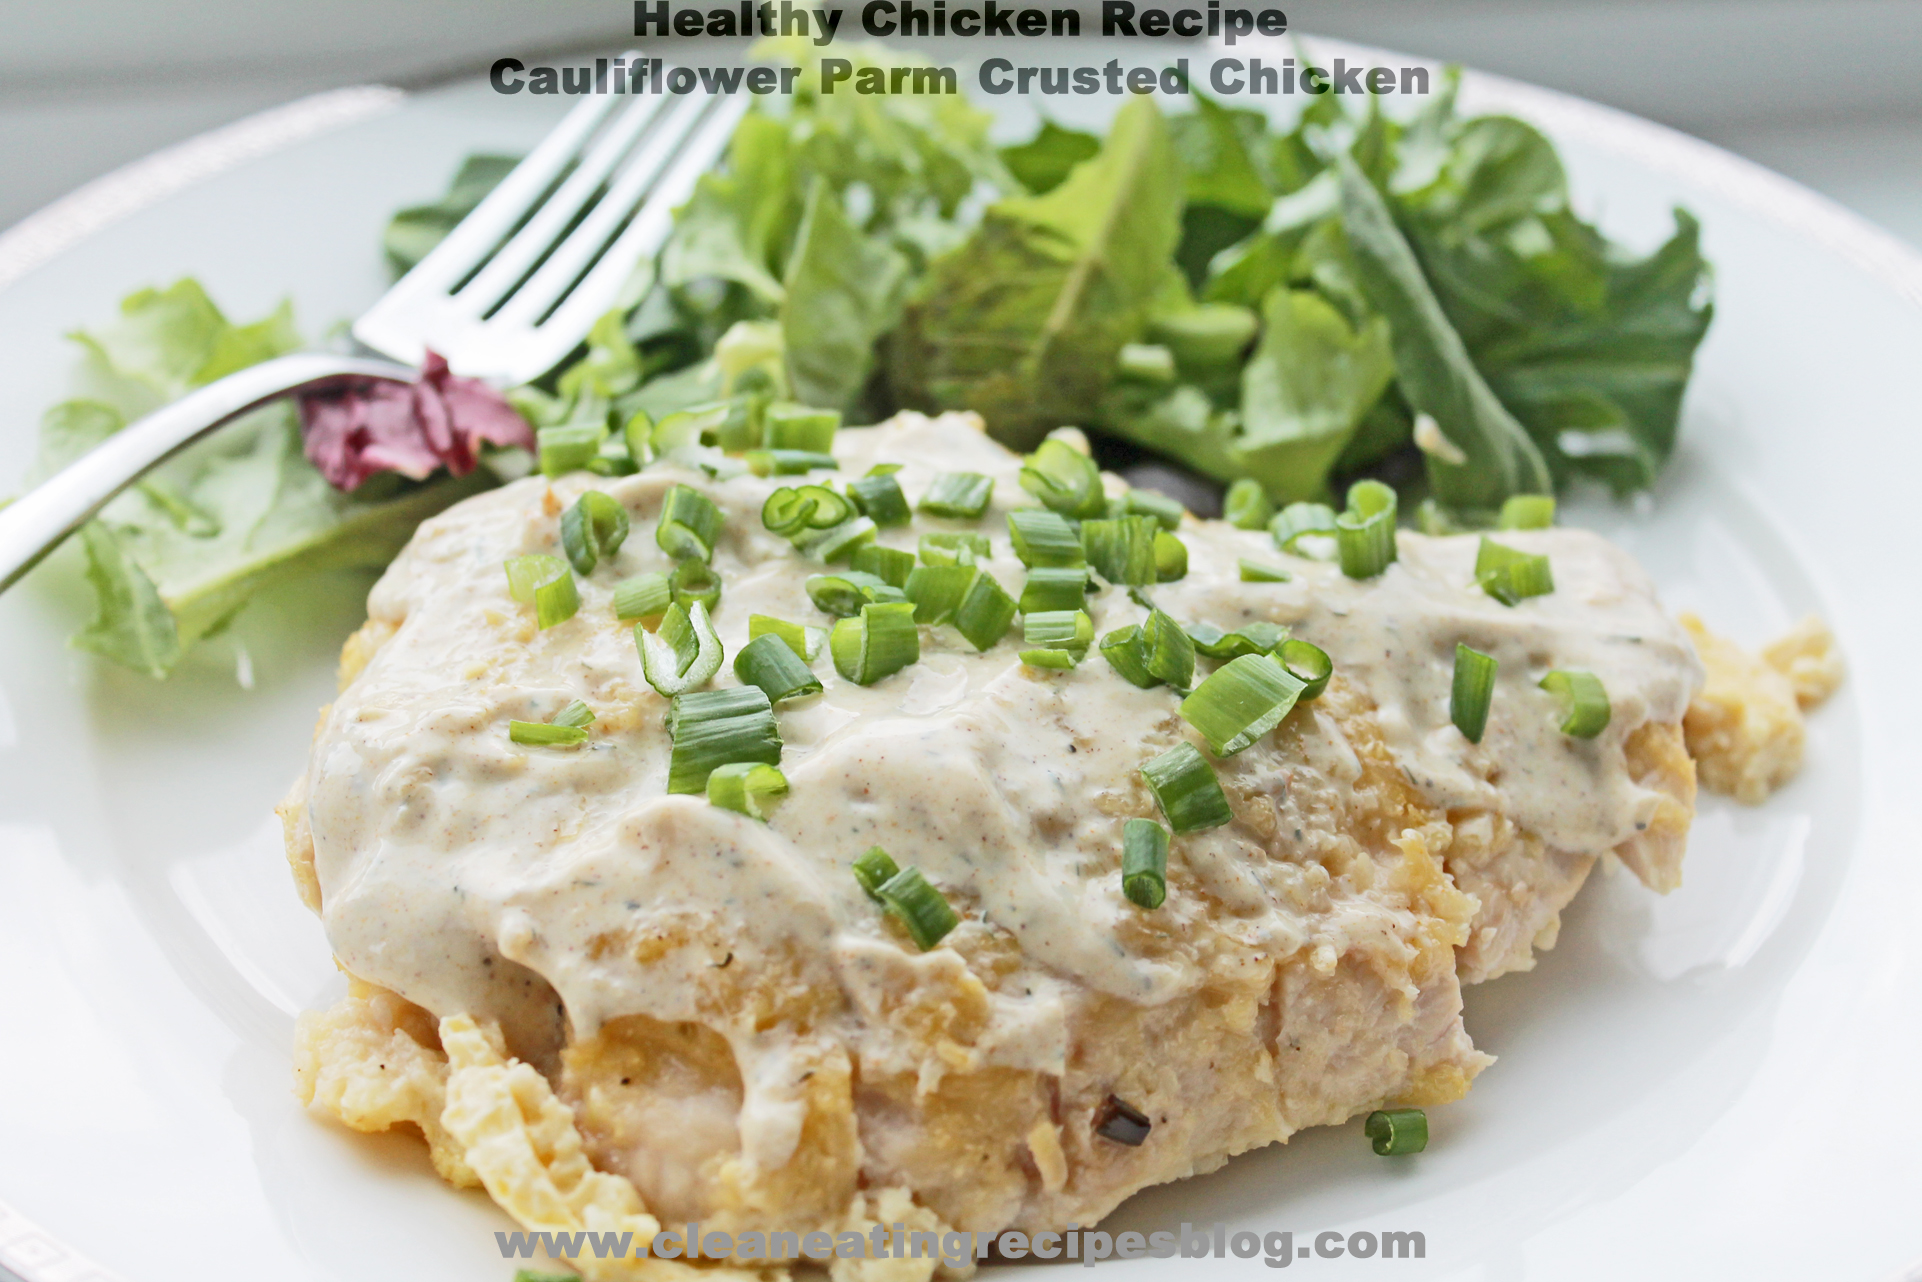 Healthy Chicken Recipe: Cauliflower and Parm Crusted Chicken with Curry Yogurt Sauce